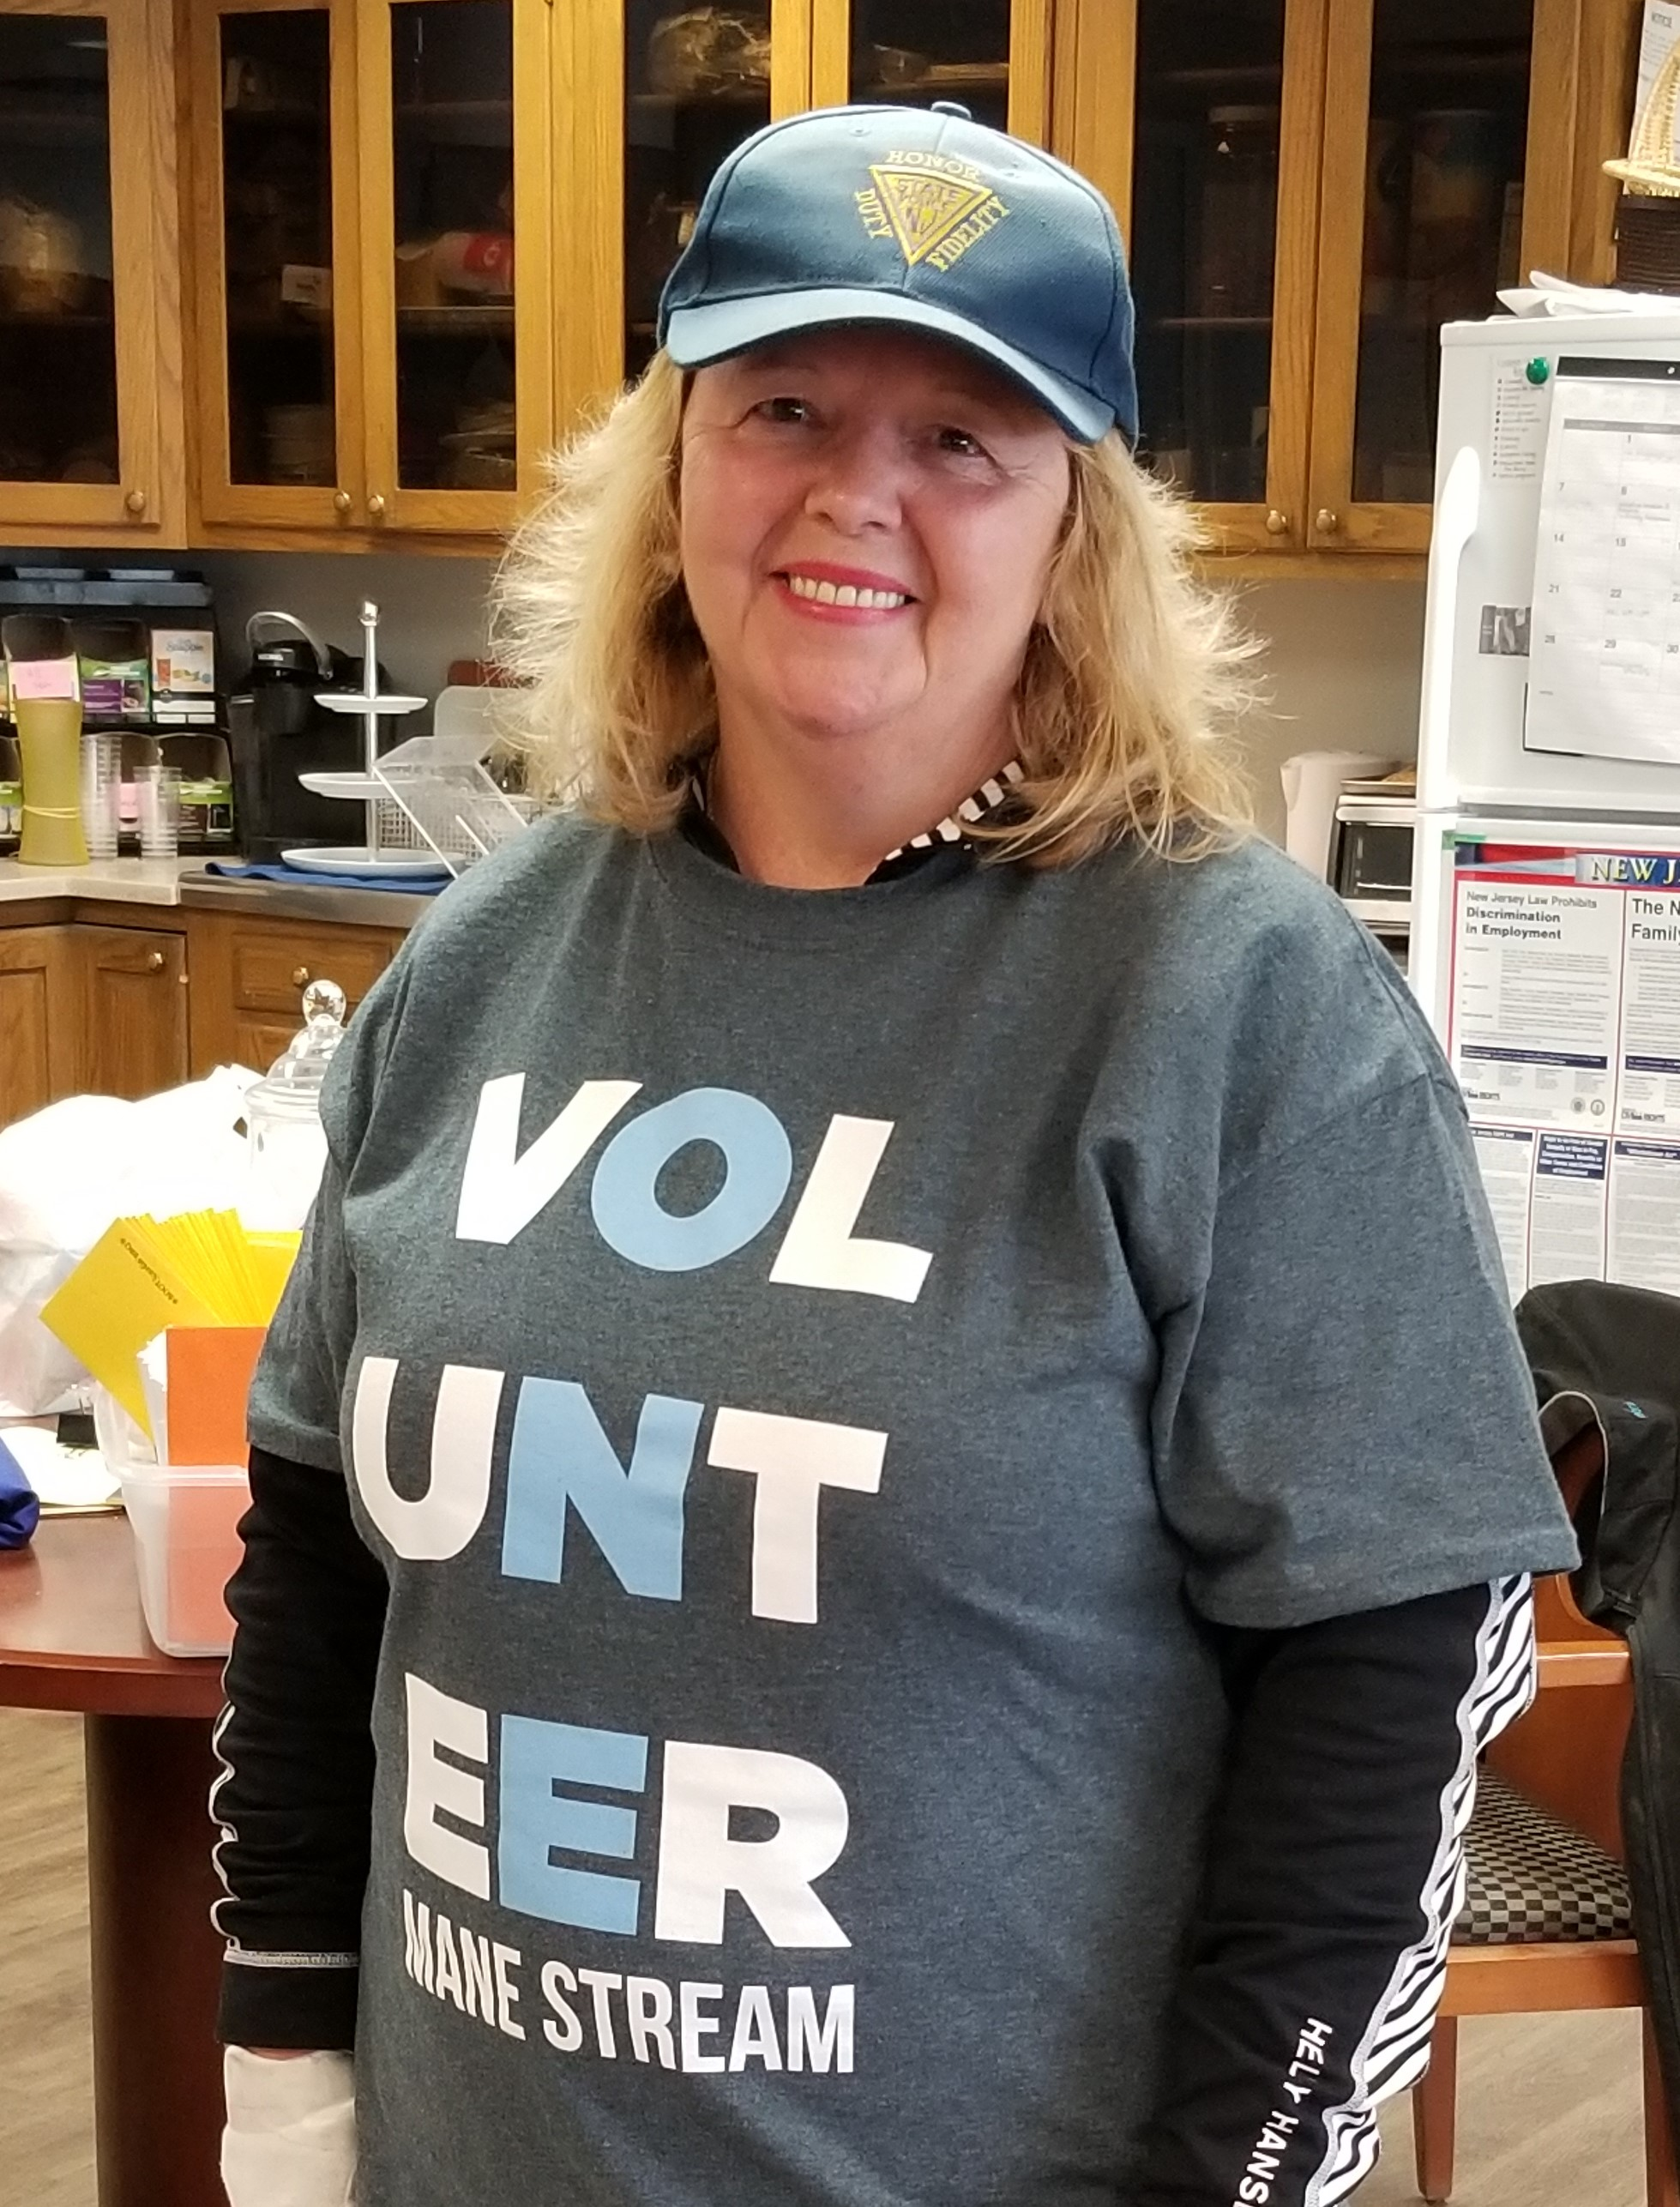 Helen in new vol shirt.jpg